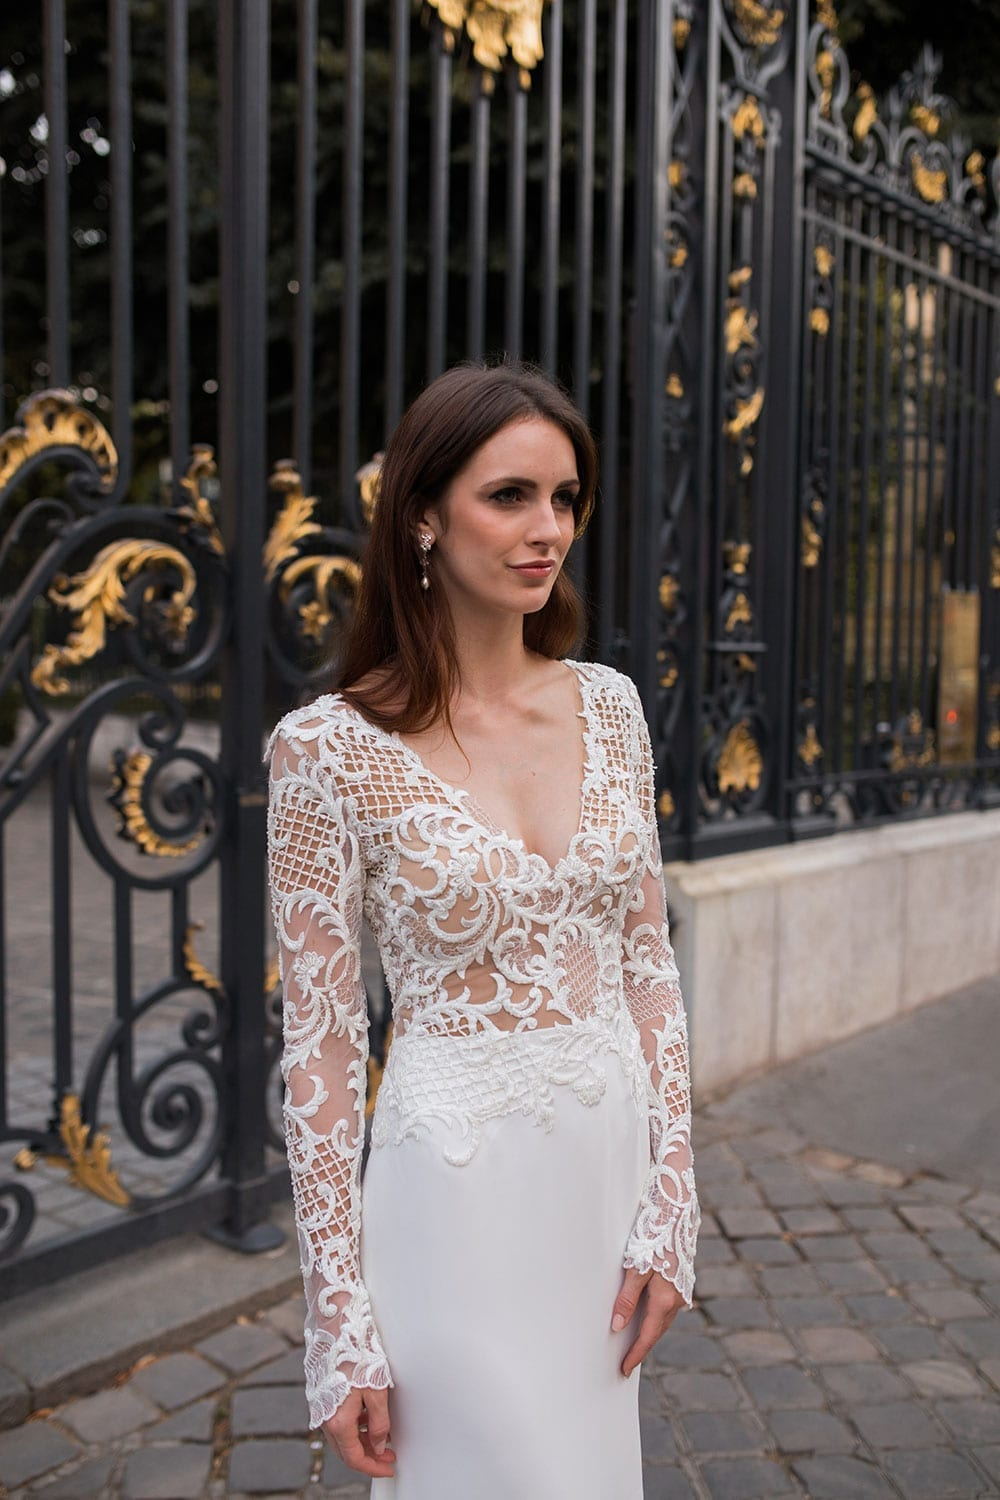 Model wearing Vinka Design Katrina Wedding Dress, a Stunning wedding dress sculptured with richly beaded lace . V neck gown with long fitted sleeves, a tailored skirt that fits softly over the hipline, and a beautiful train. Worn infront of ornate gate in Paris.